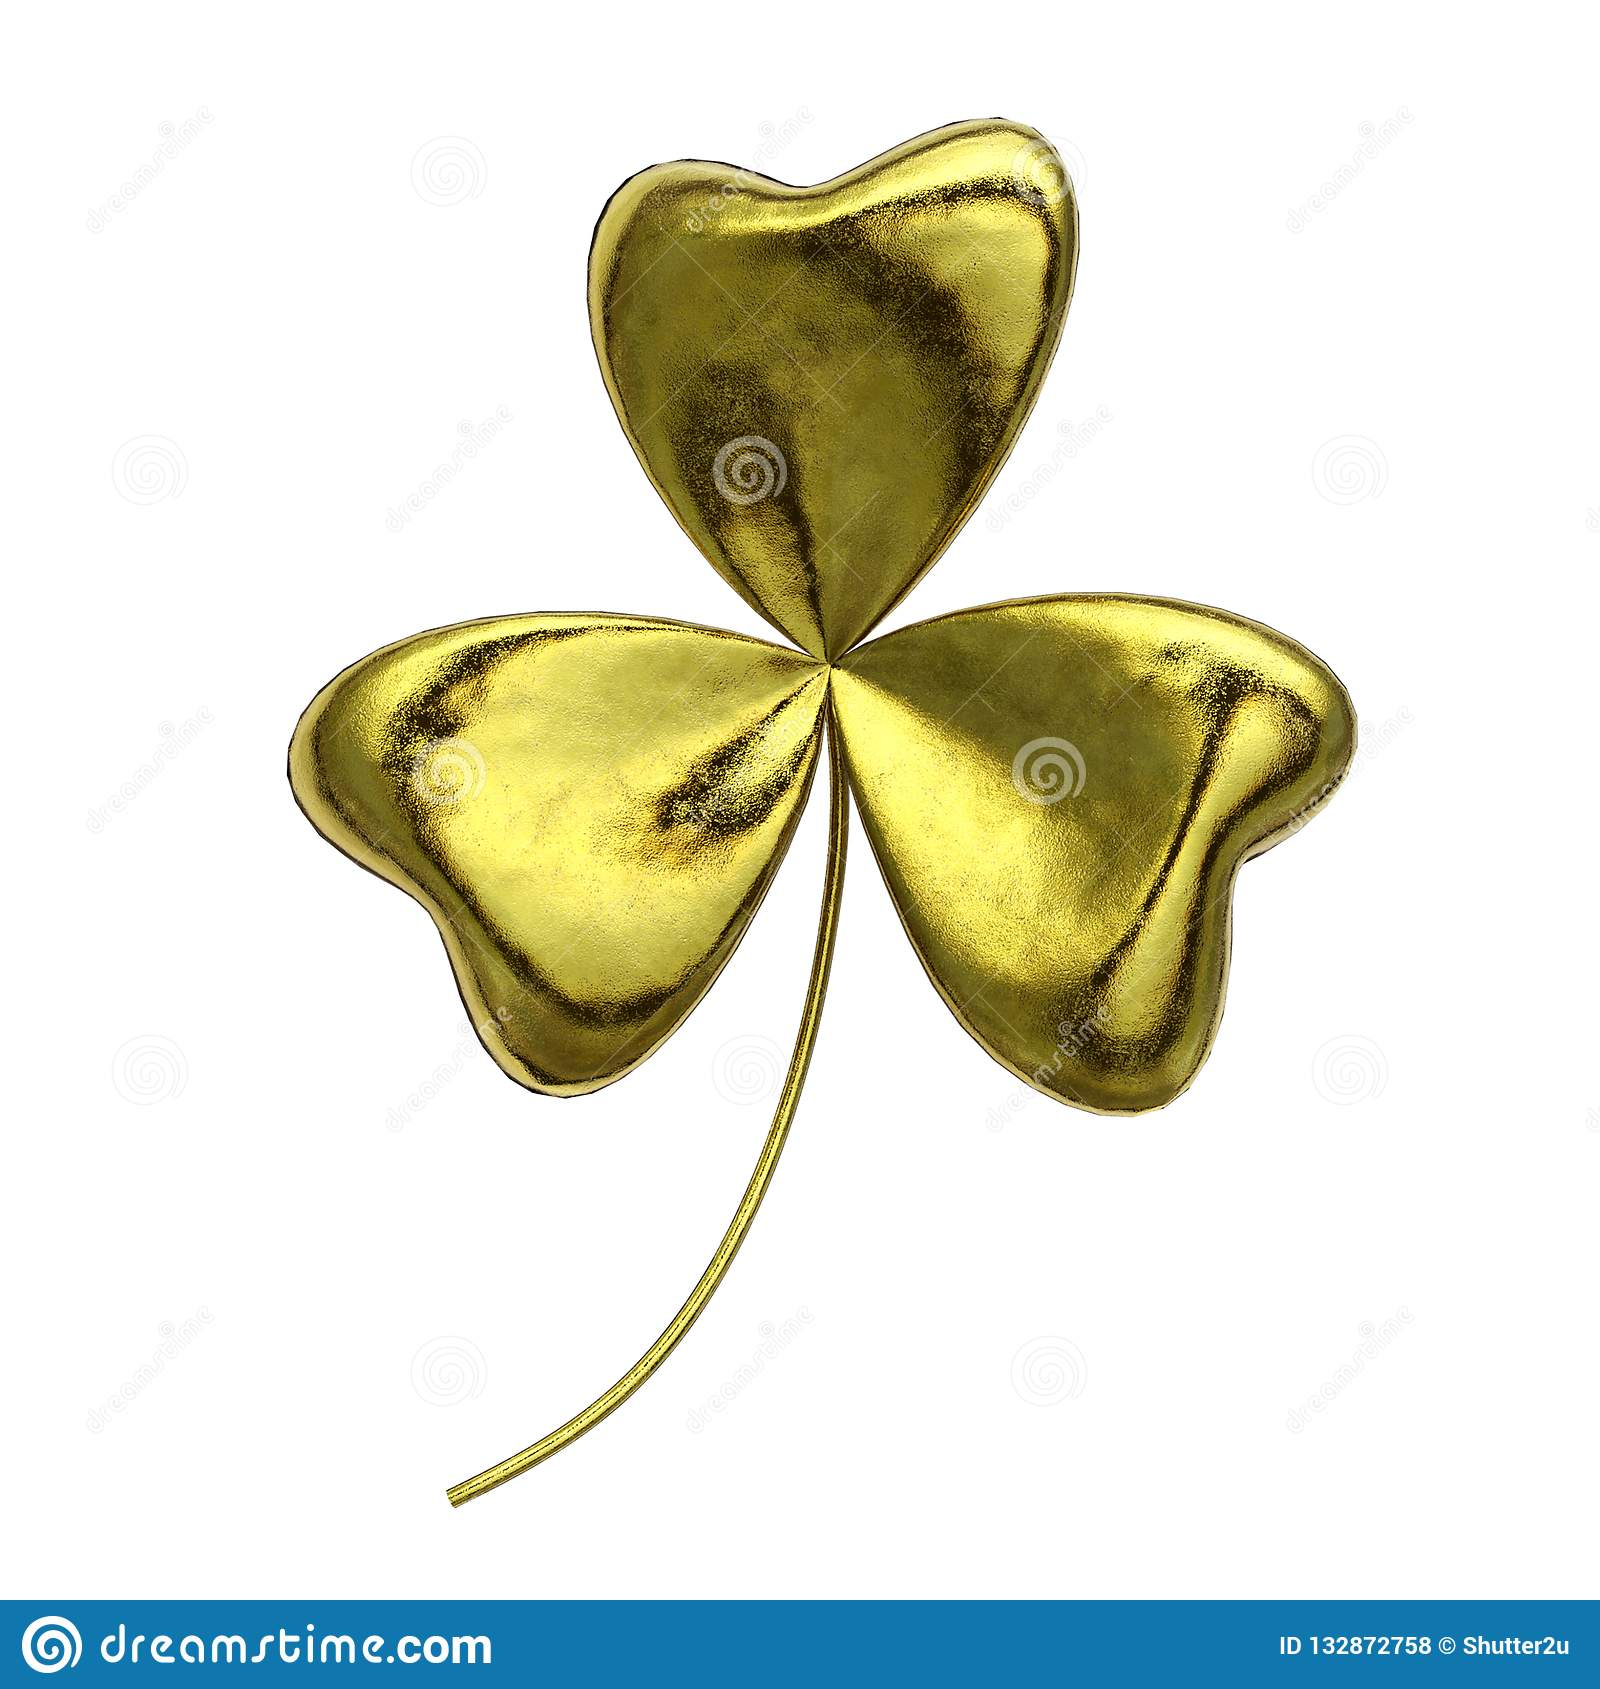 Gold shamrock on isolated white background. Object and Nature concept. Saint Patrick day theme. 3D illustration rendering.